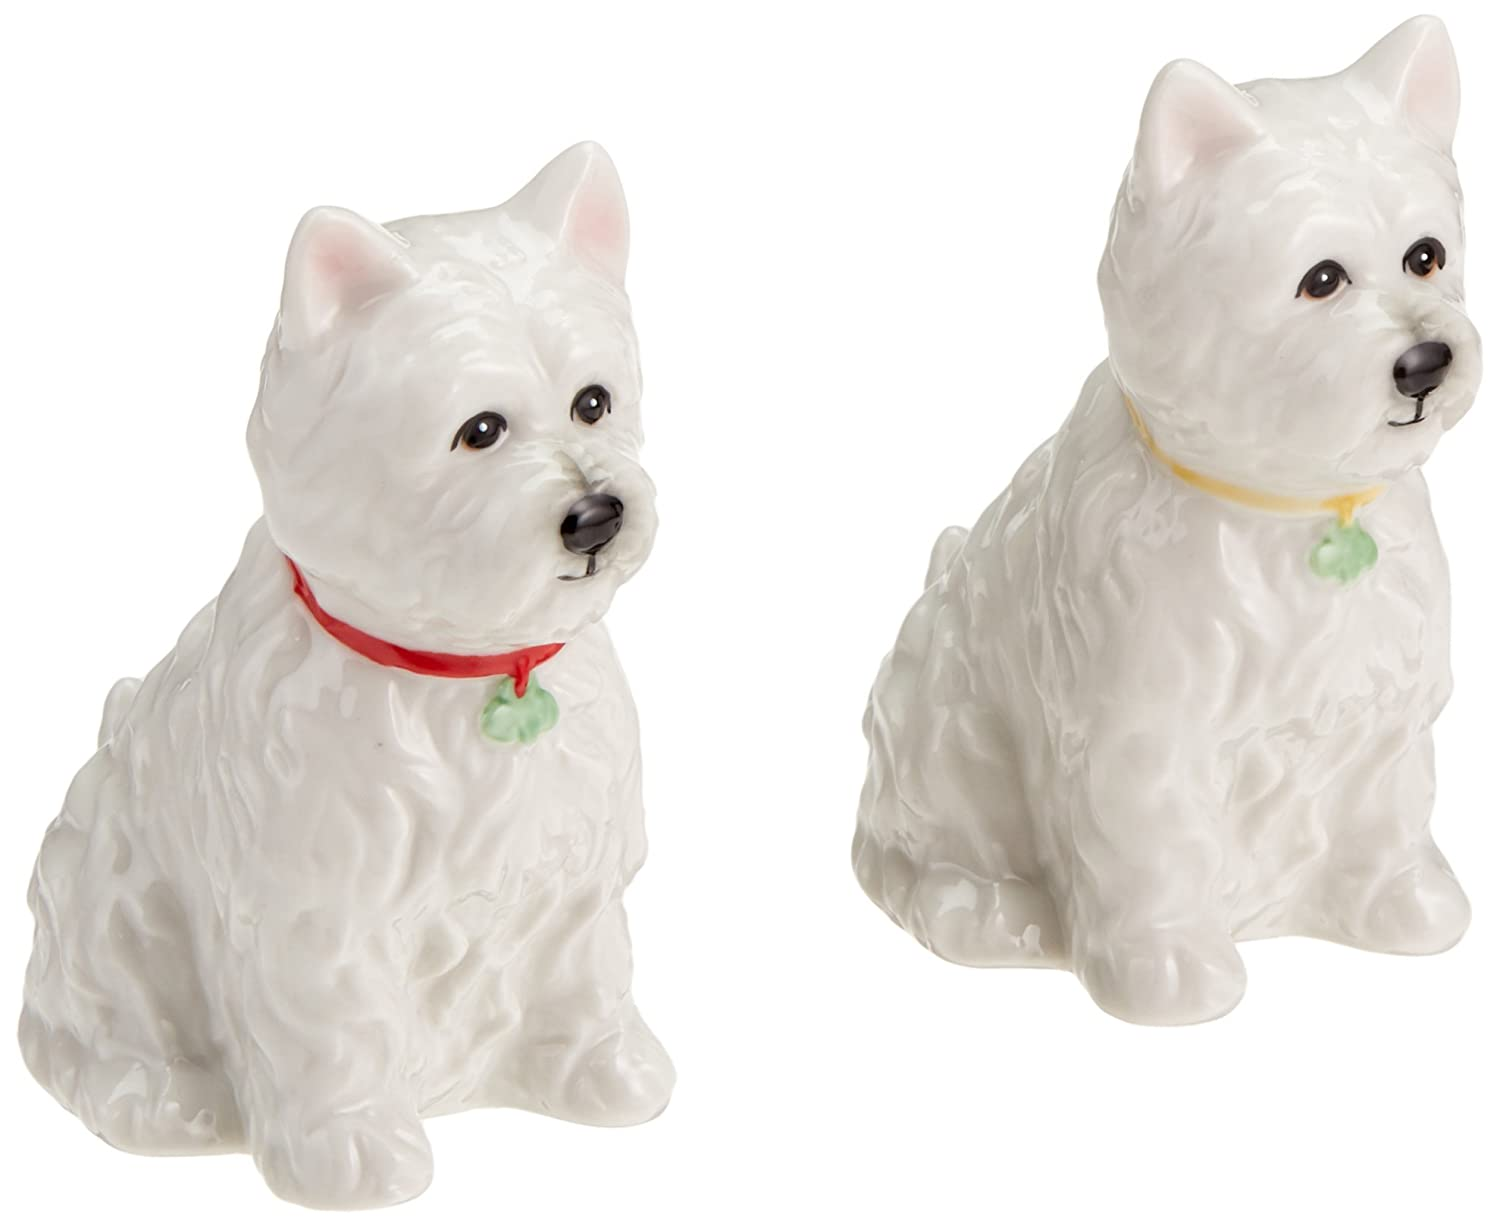 CG 20885 2.88 Ceramic Westie Dog Salt and Pepper Shaker, Set of 2 SS-CG-20885